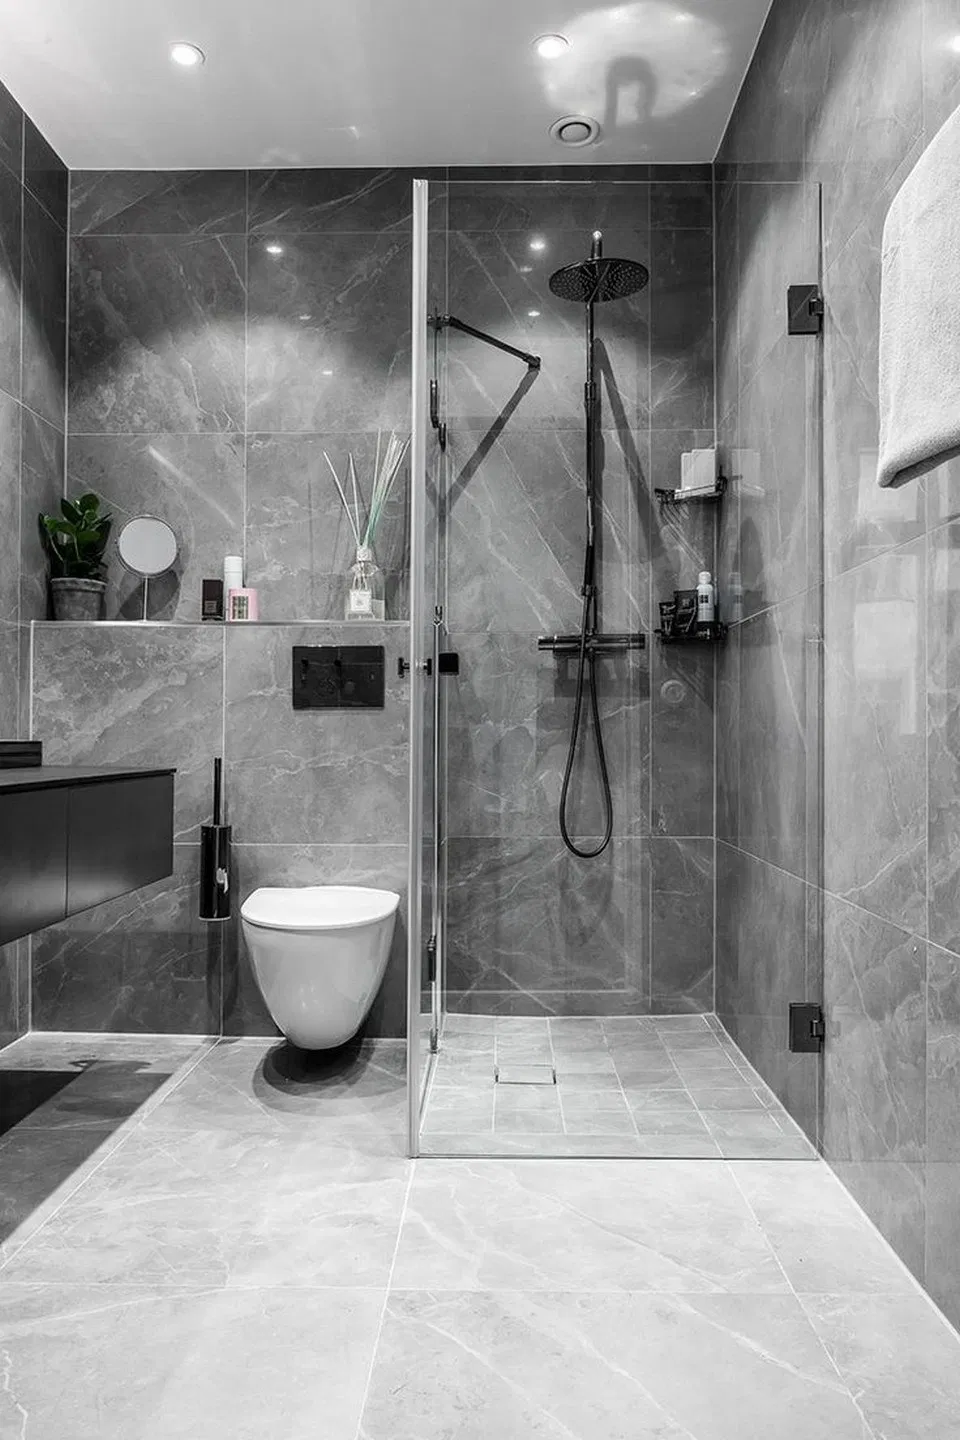 19 of the best modern & functional bathroom design ideas 2 » birdexpressions.com